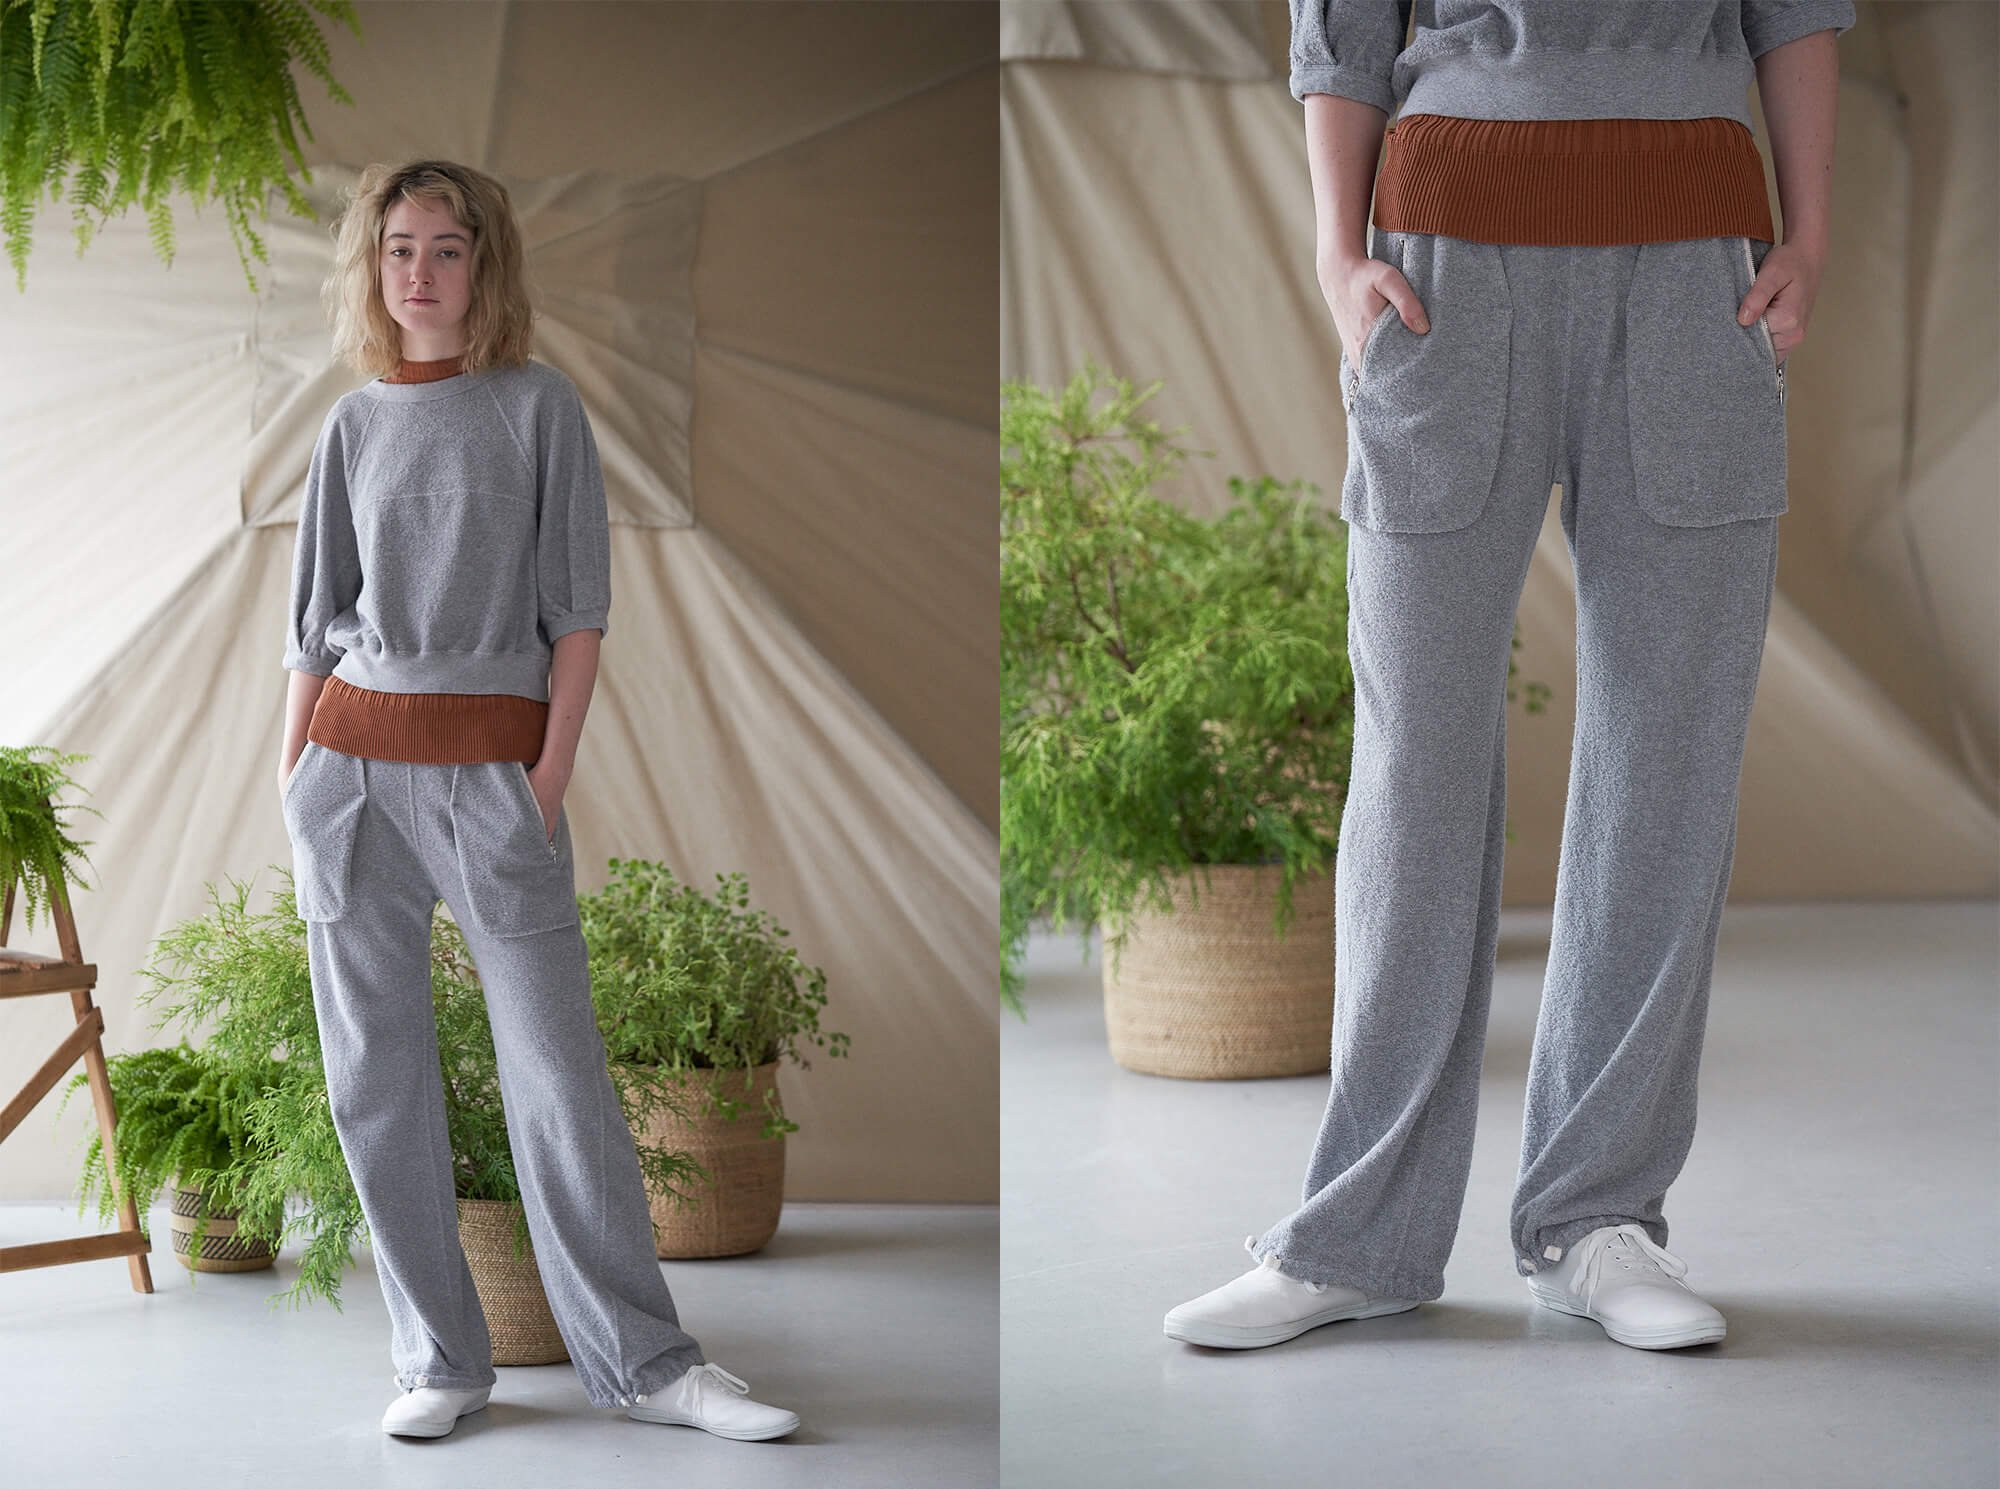 <img class='new_mark_img1' src='https://img.shop-pro.jp/img/new/icons14.gif' style='border:none;display:inline;margin:0px;padding:0px;width:auto;' />vintage cotton-pile wide leg pants